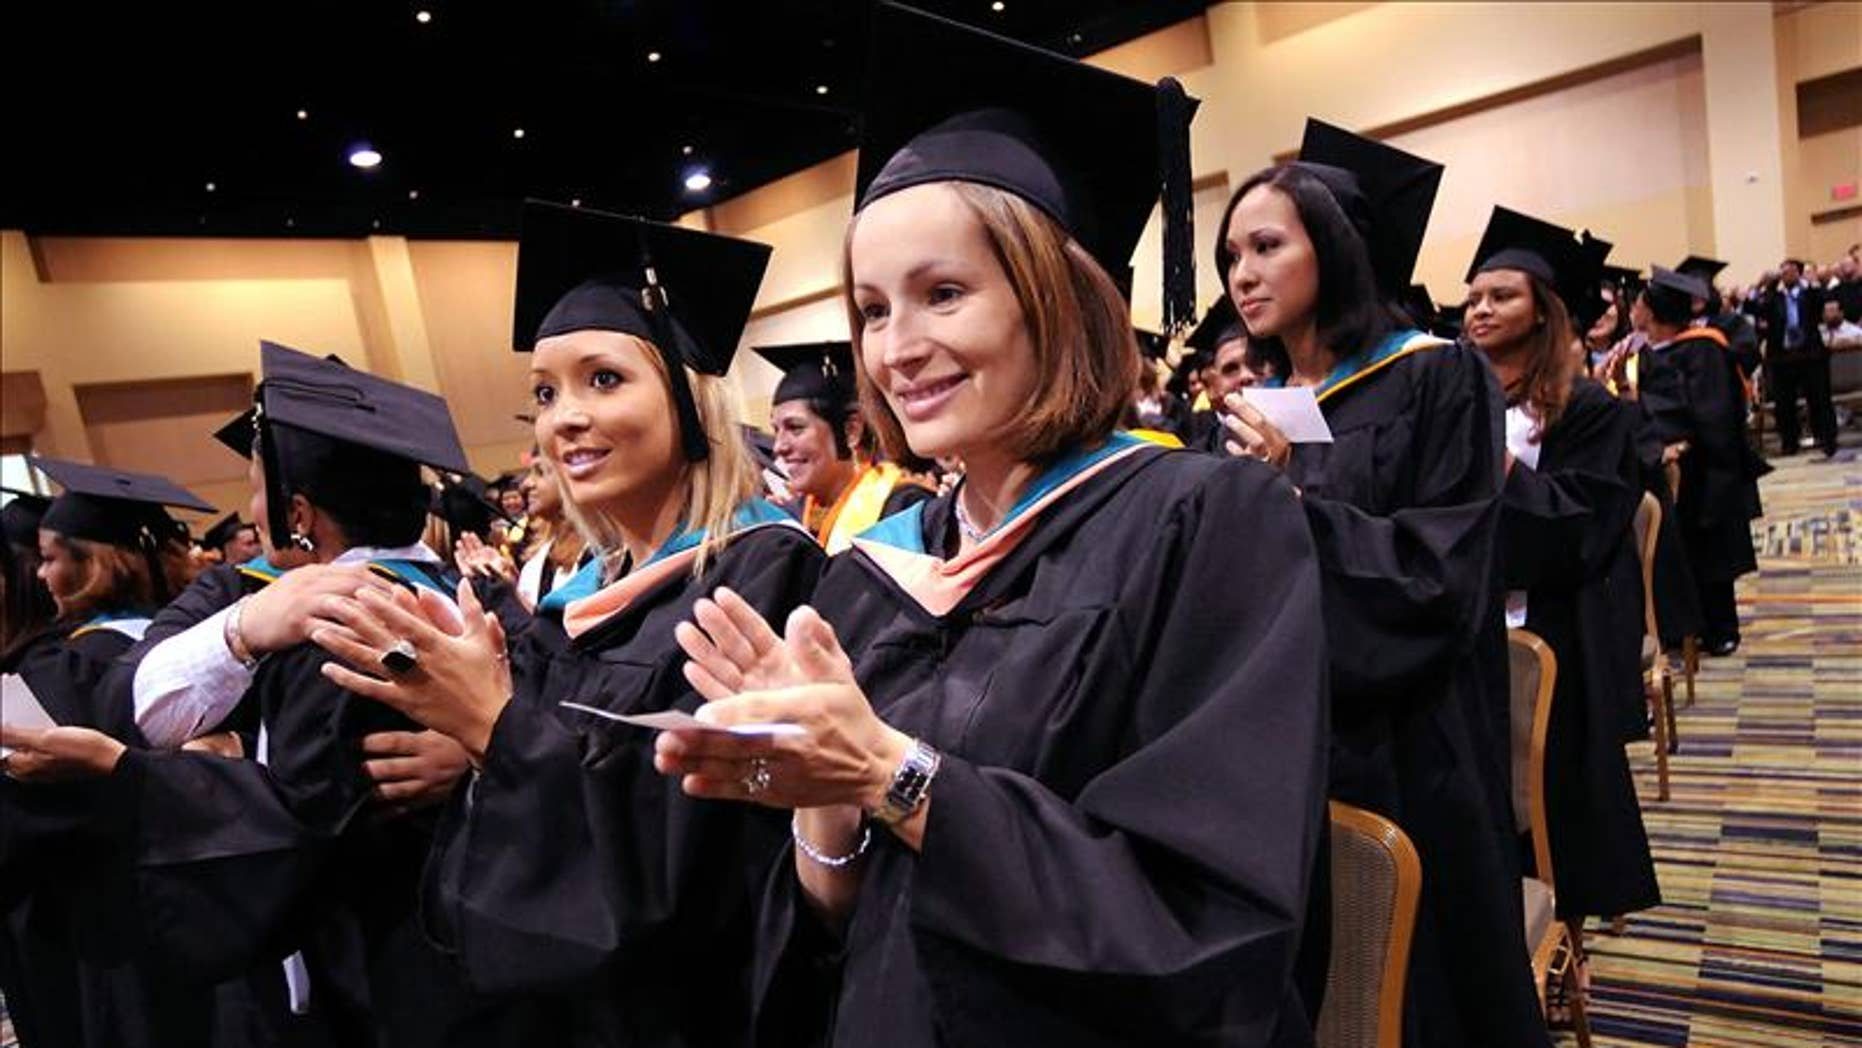 Students at a graduation ceremony in Orlando, Florida.